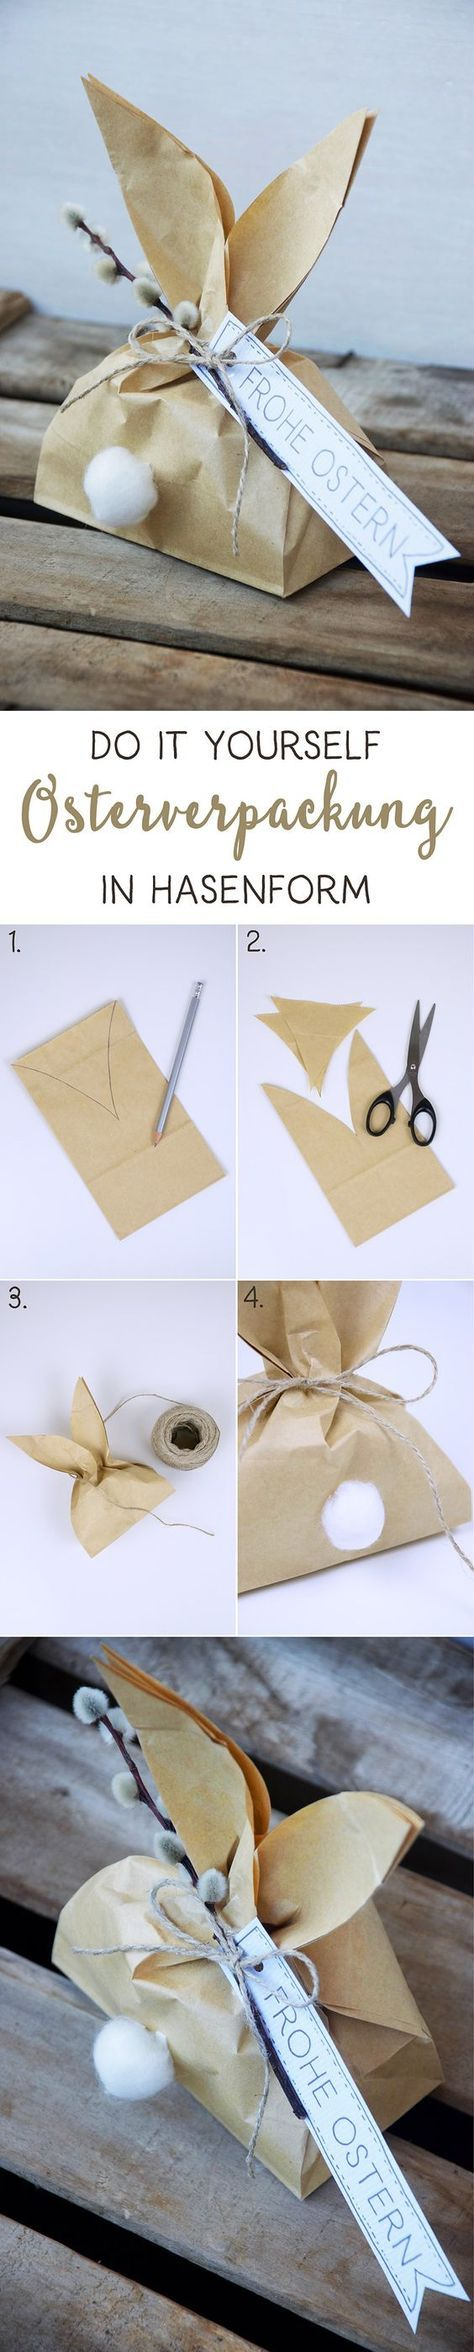 {DIY} Osterverpackung in Hasenform - barfuss.im.november #paperprojects